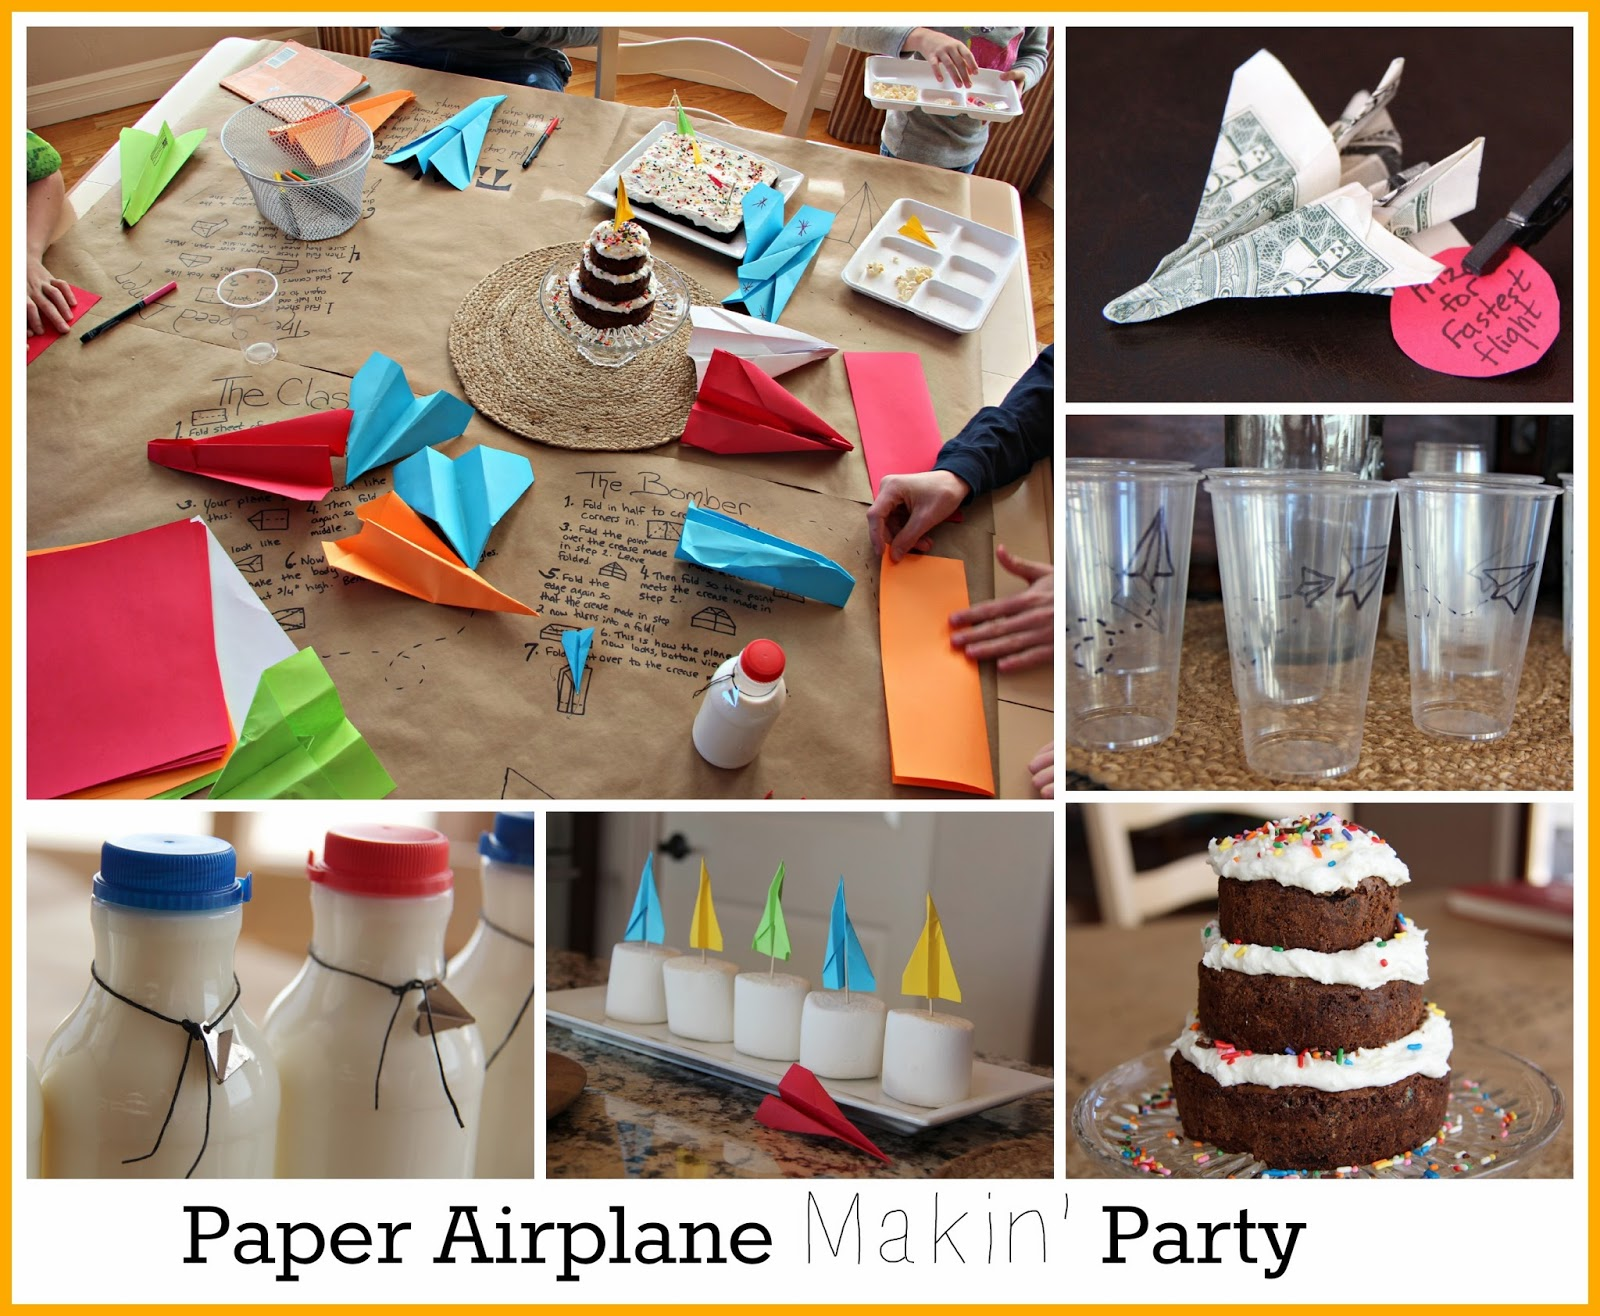 Moore Minutes Paper Airplane MAKING Themed 10th Birthday Party